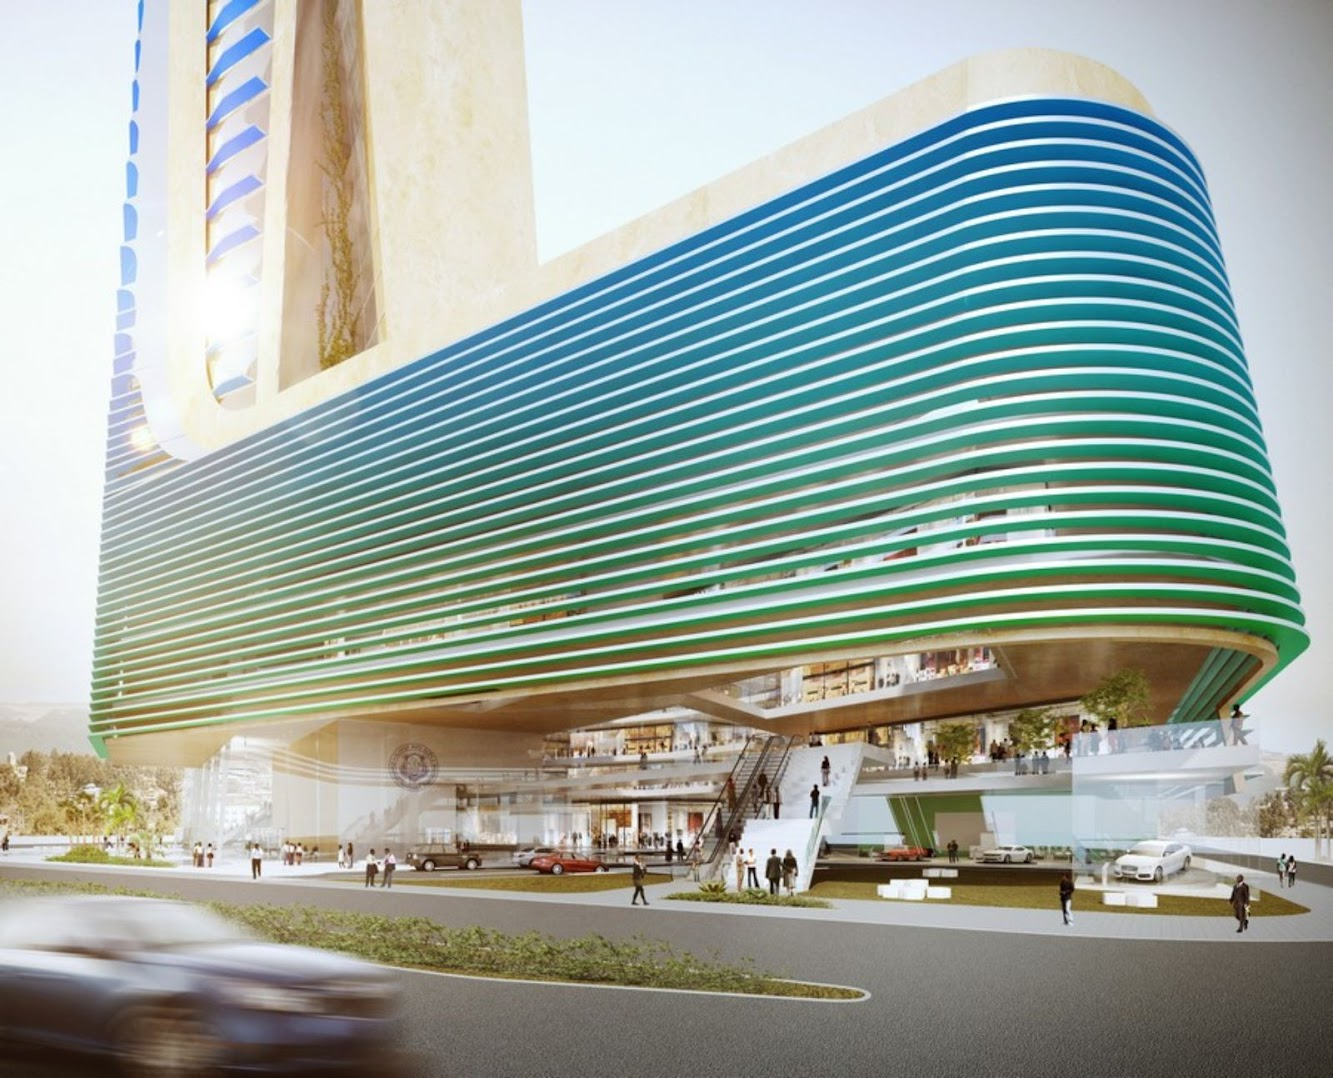 Ethiopian Insurance Corporation by Sohne Partner Architects